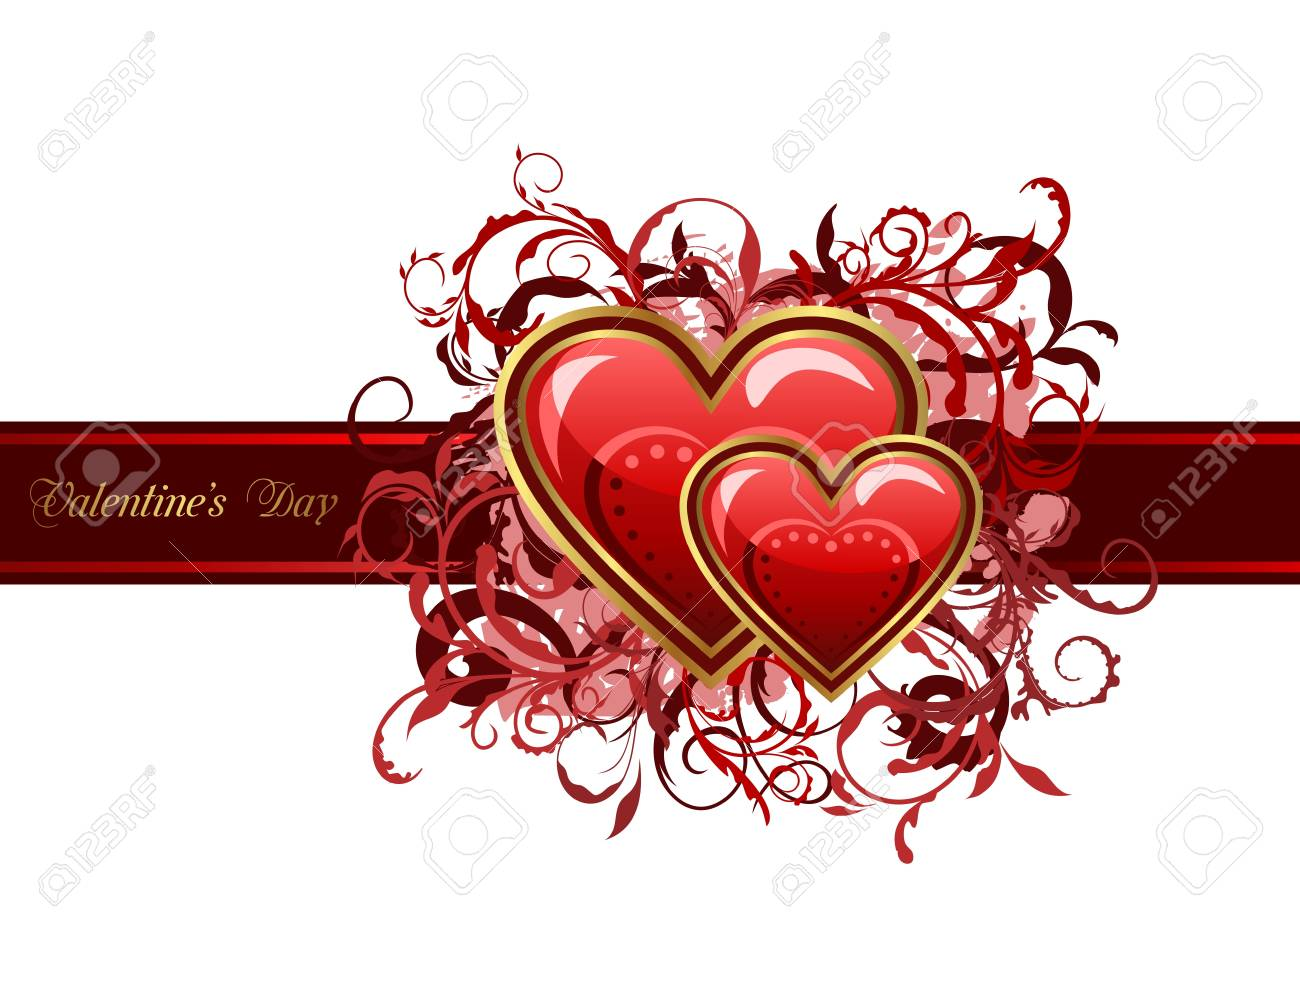 Illustration of Valentine's grunge card with hearts - vector Stock Photo - 8716434